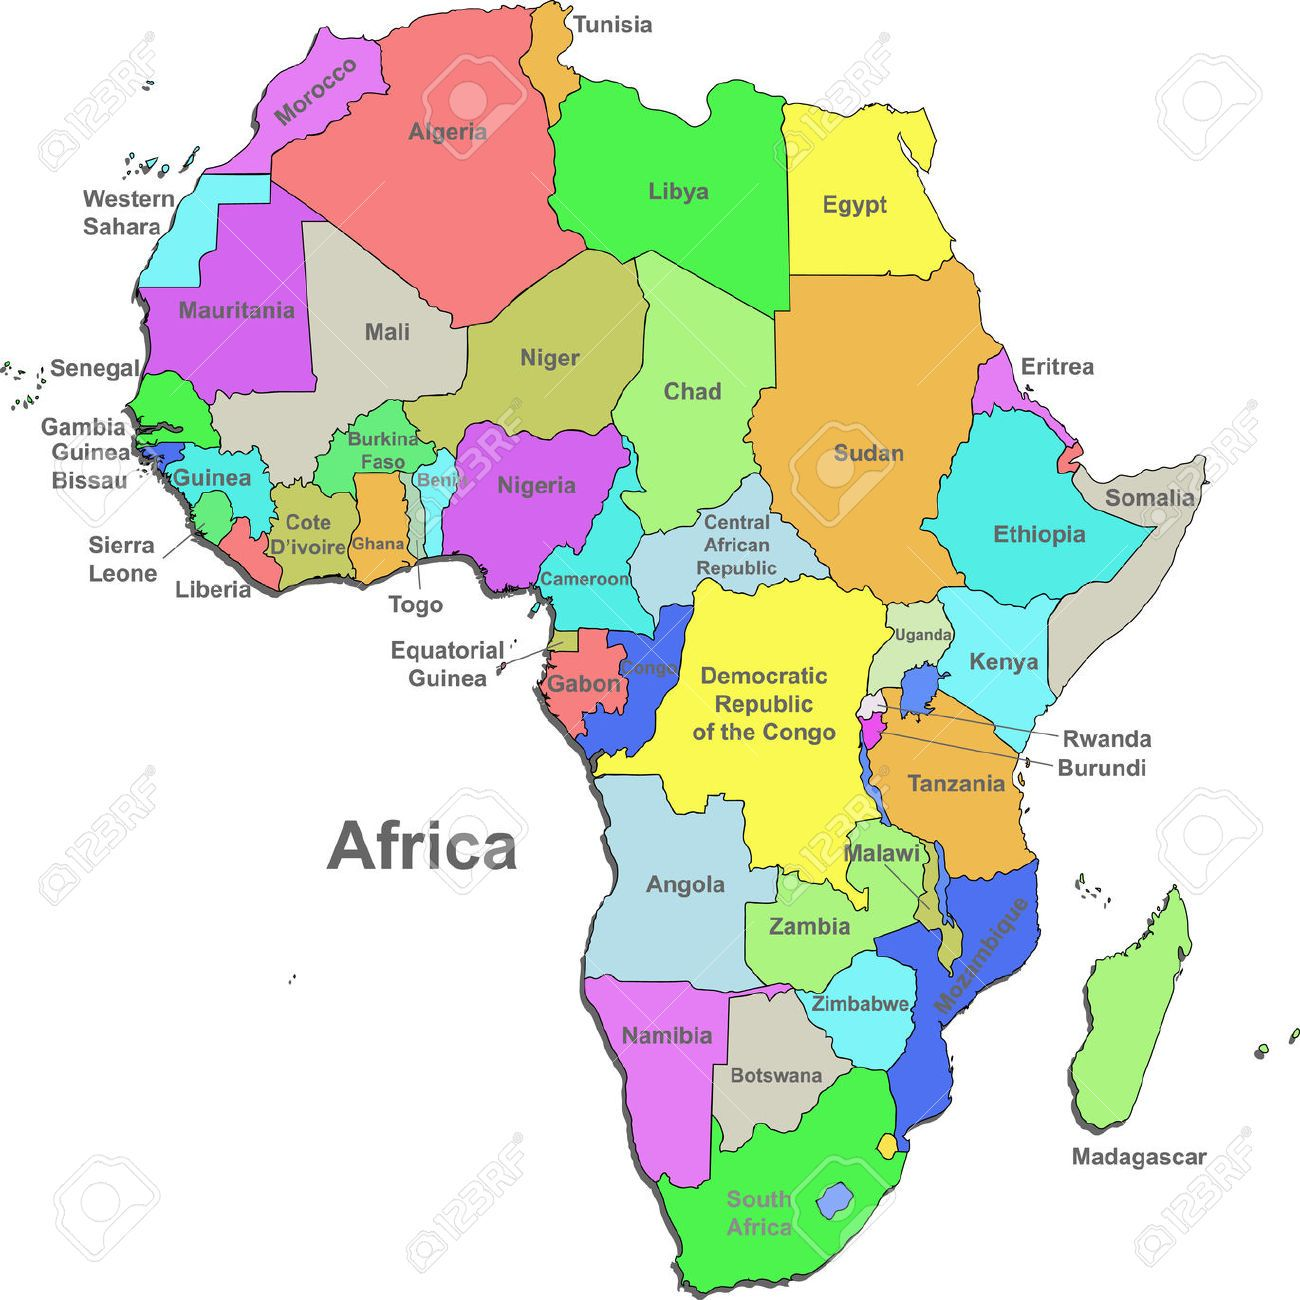 Map Of Africa Countries Labeled.A Current Day Map Of Africa Africa Map African Countries Map